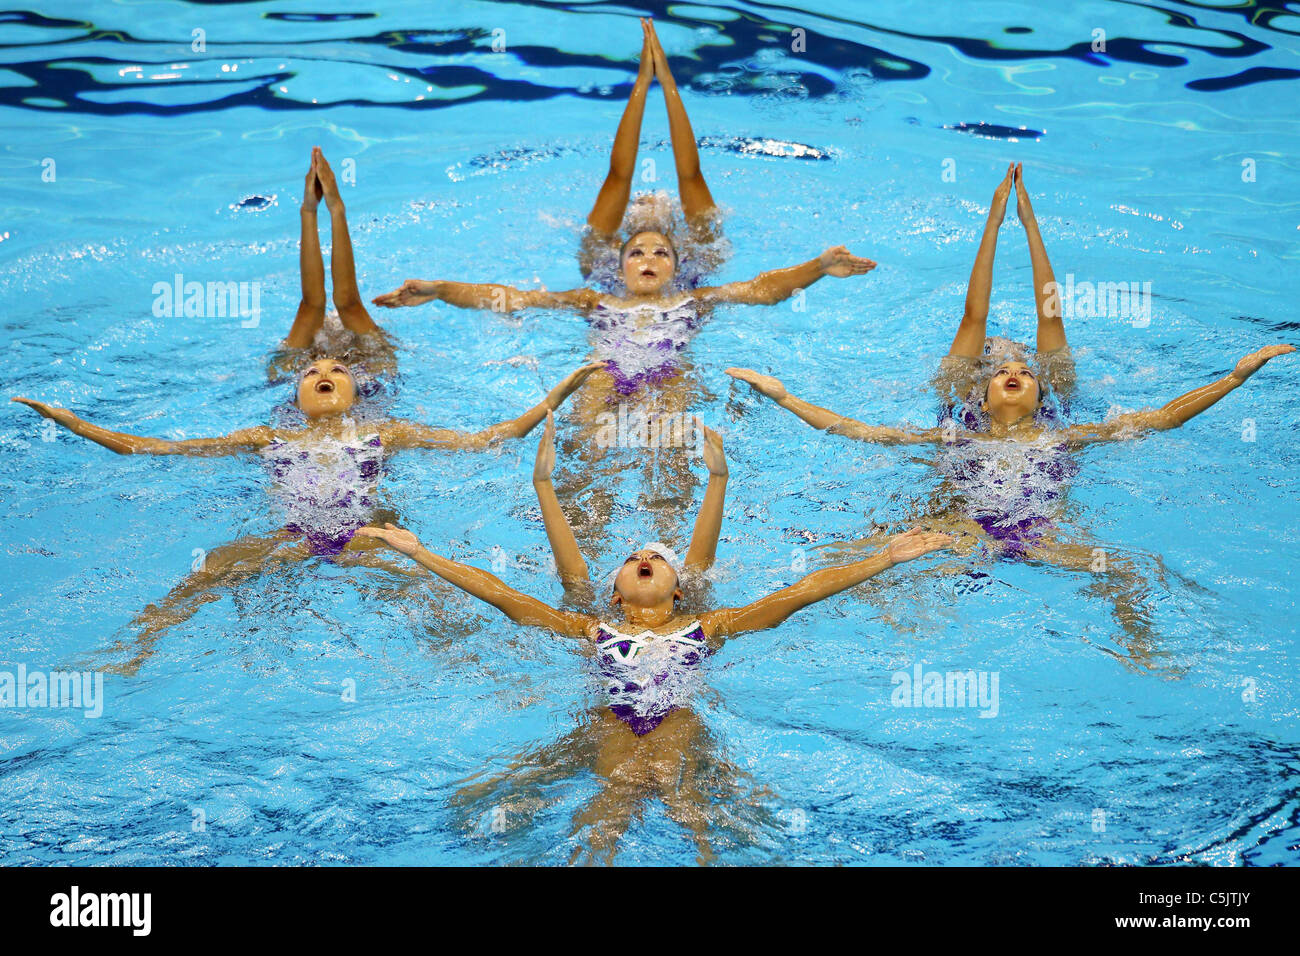 Japan Synchronized Swimming National Team Group for 14th FINA World Championships Shanghai 2011. - Stock Image